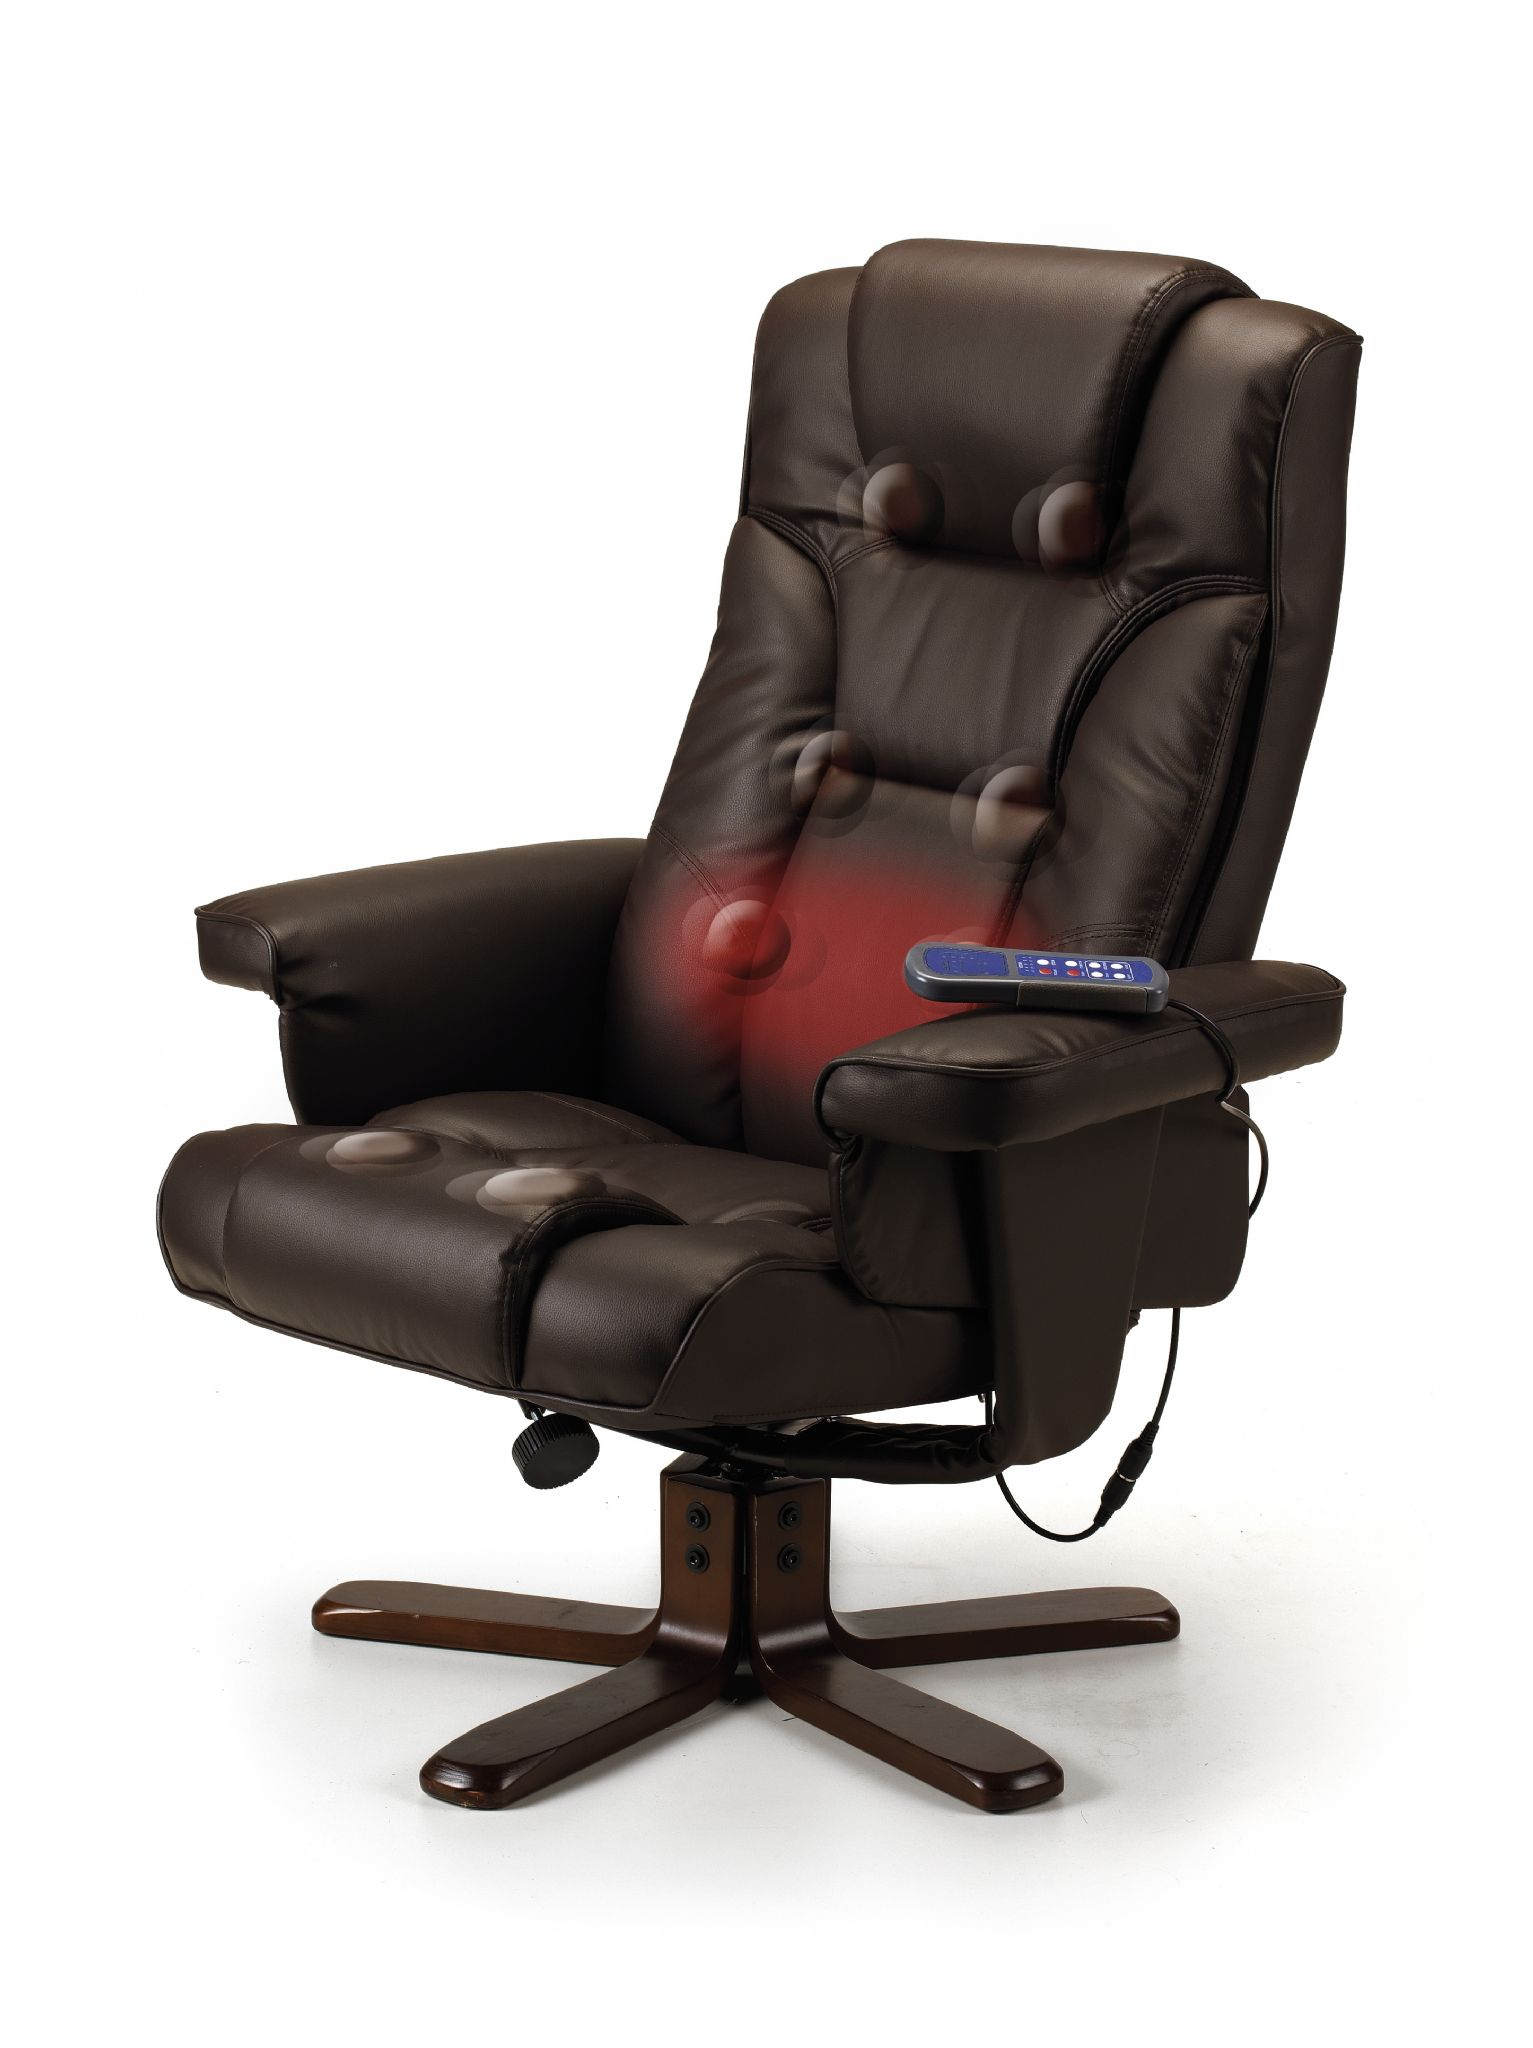 office chair johor coleman deck with table uk roncesvalles brown massage recliner and stool jb297